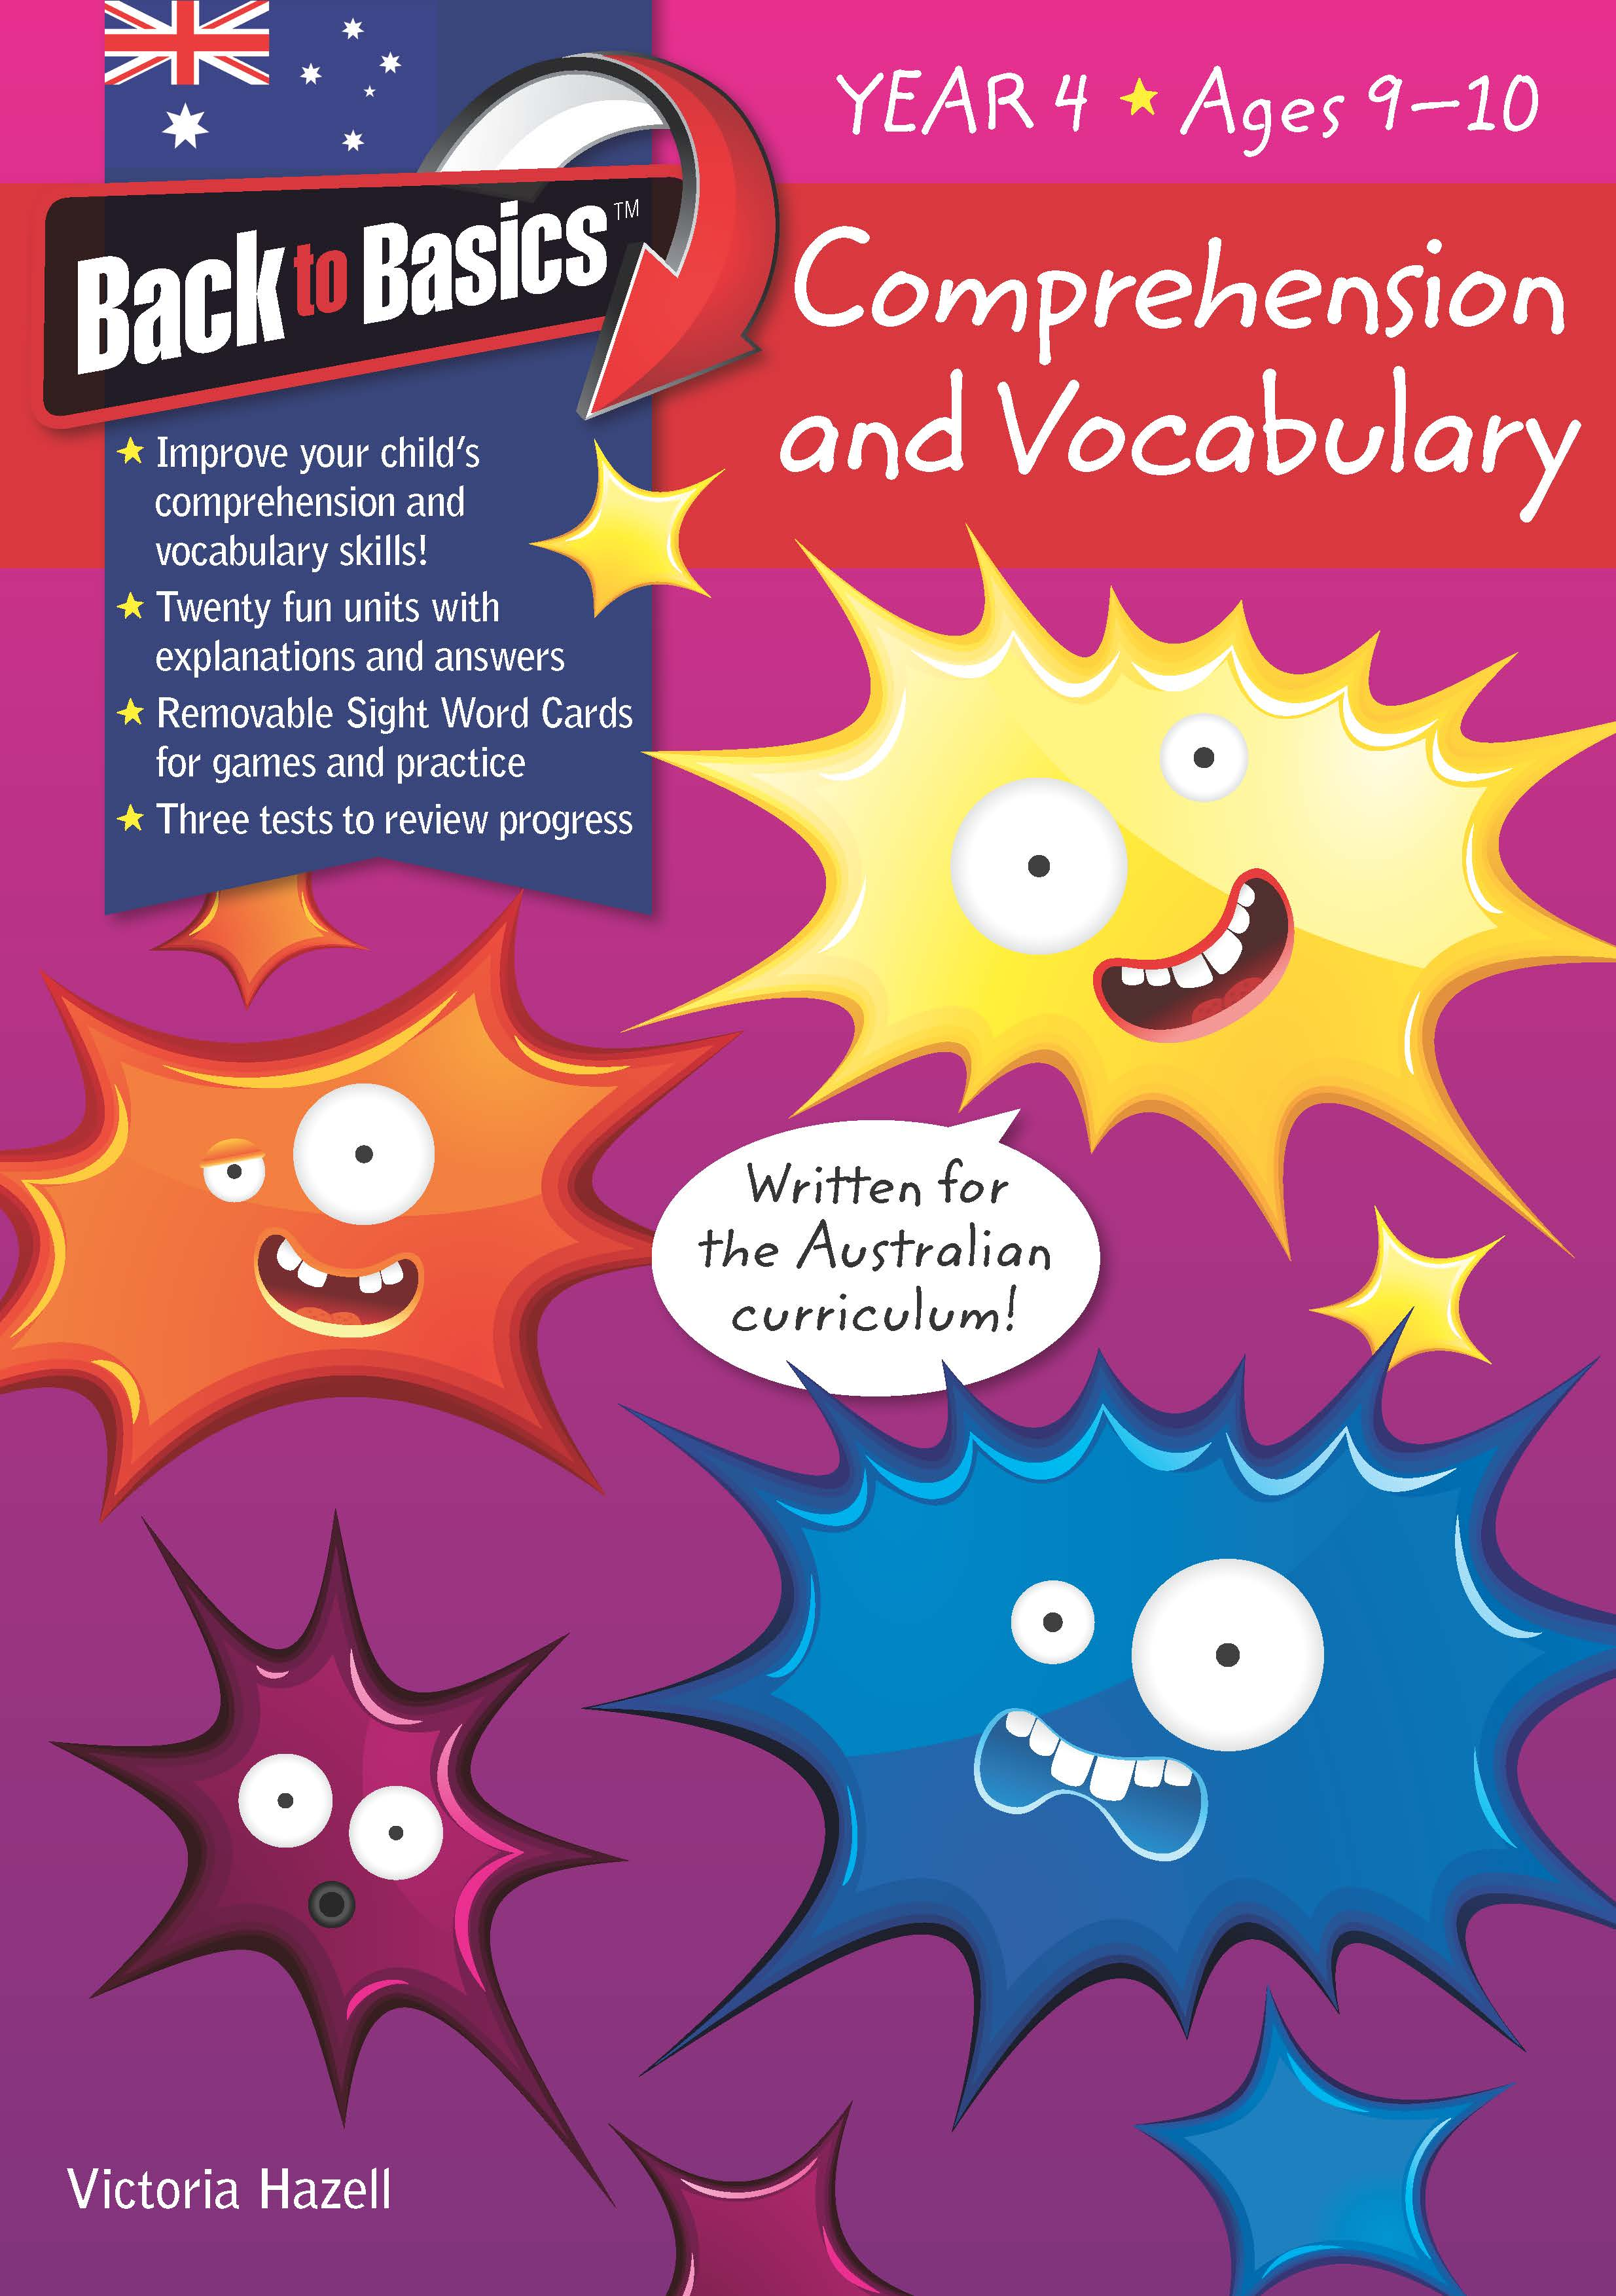 Back to Basics - Comprehension & Vocabulary Year 4